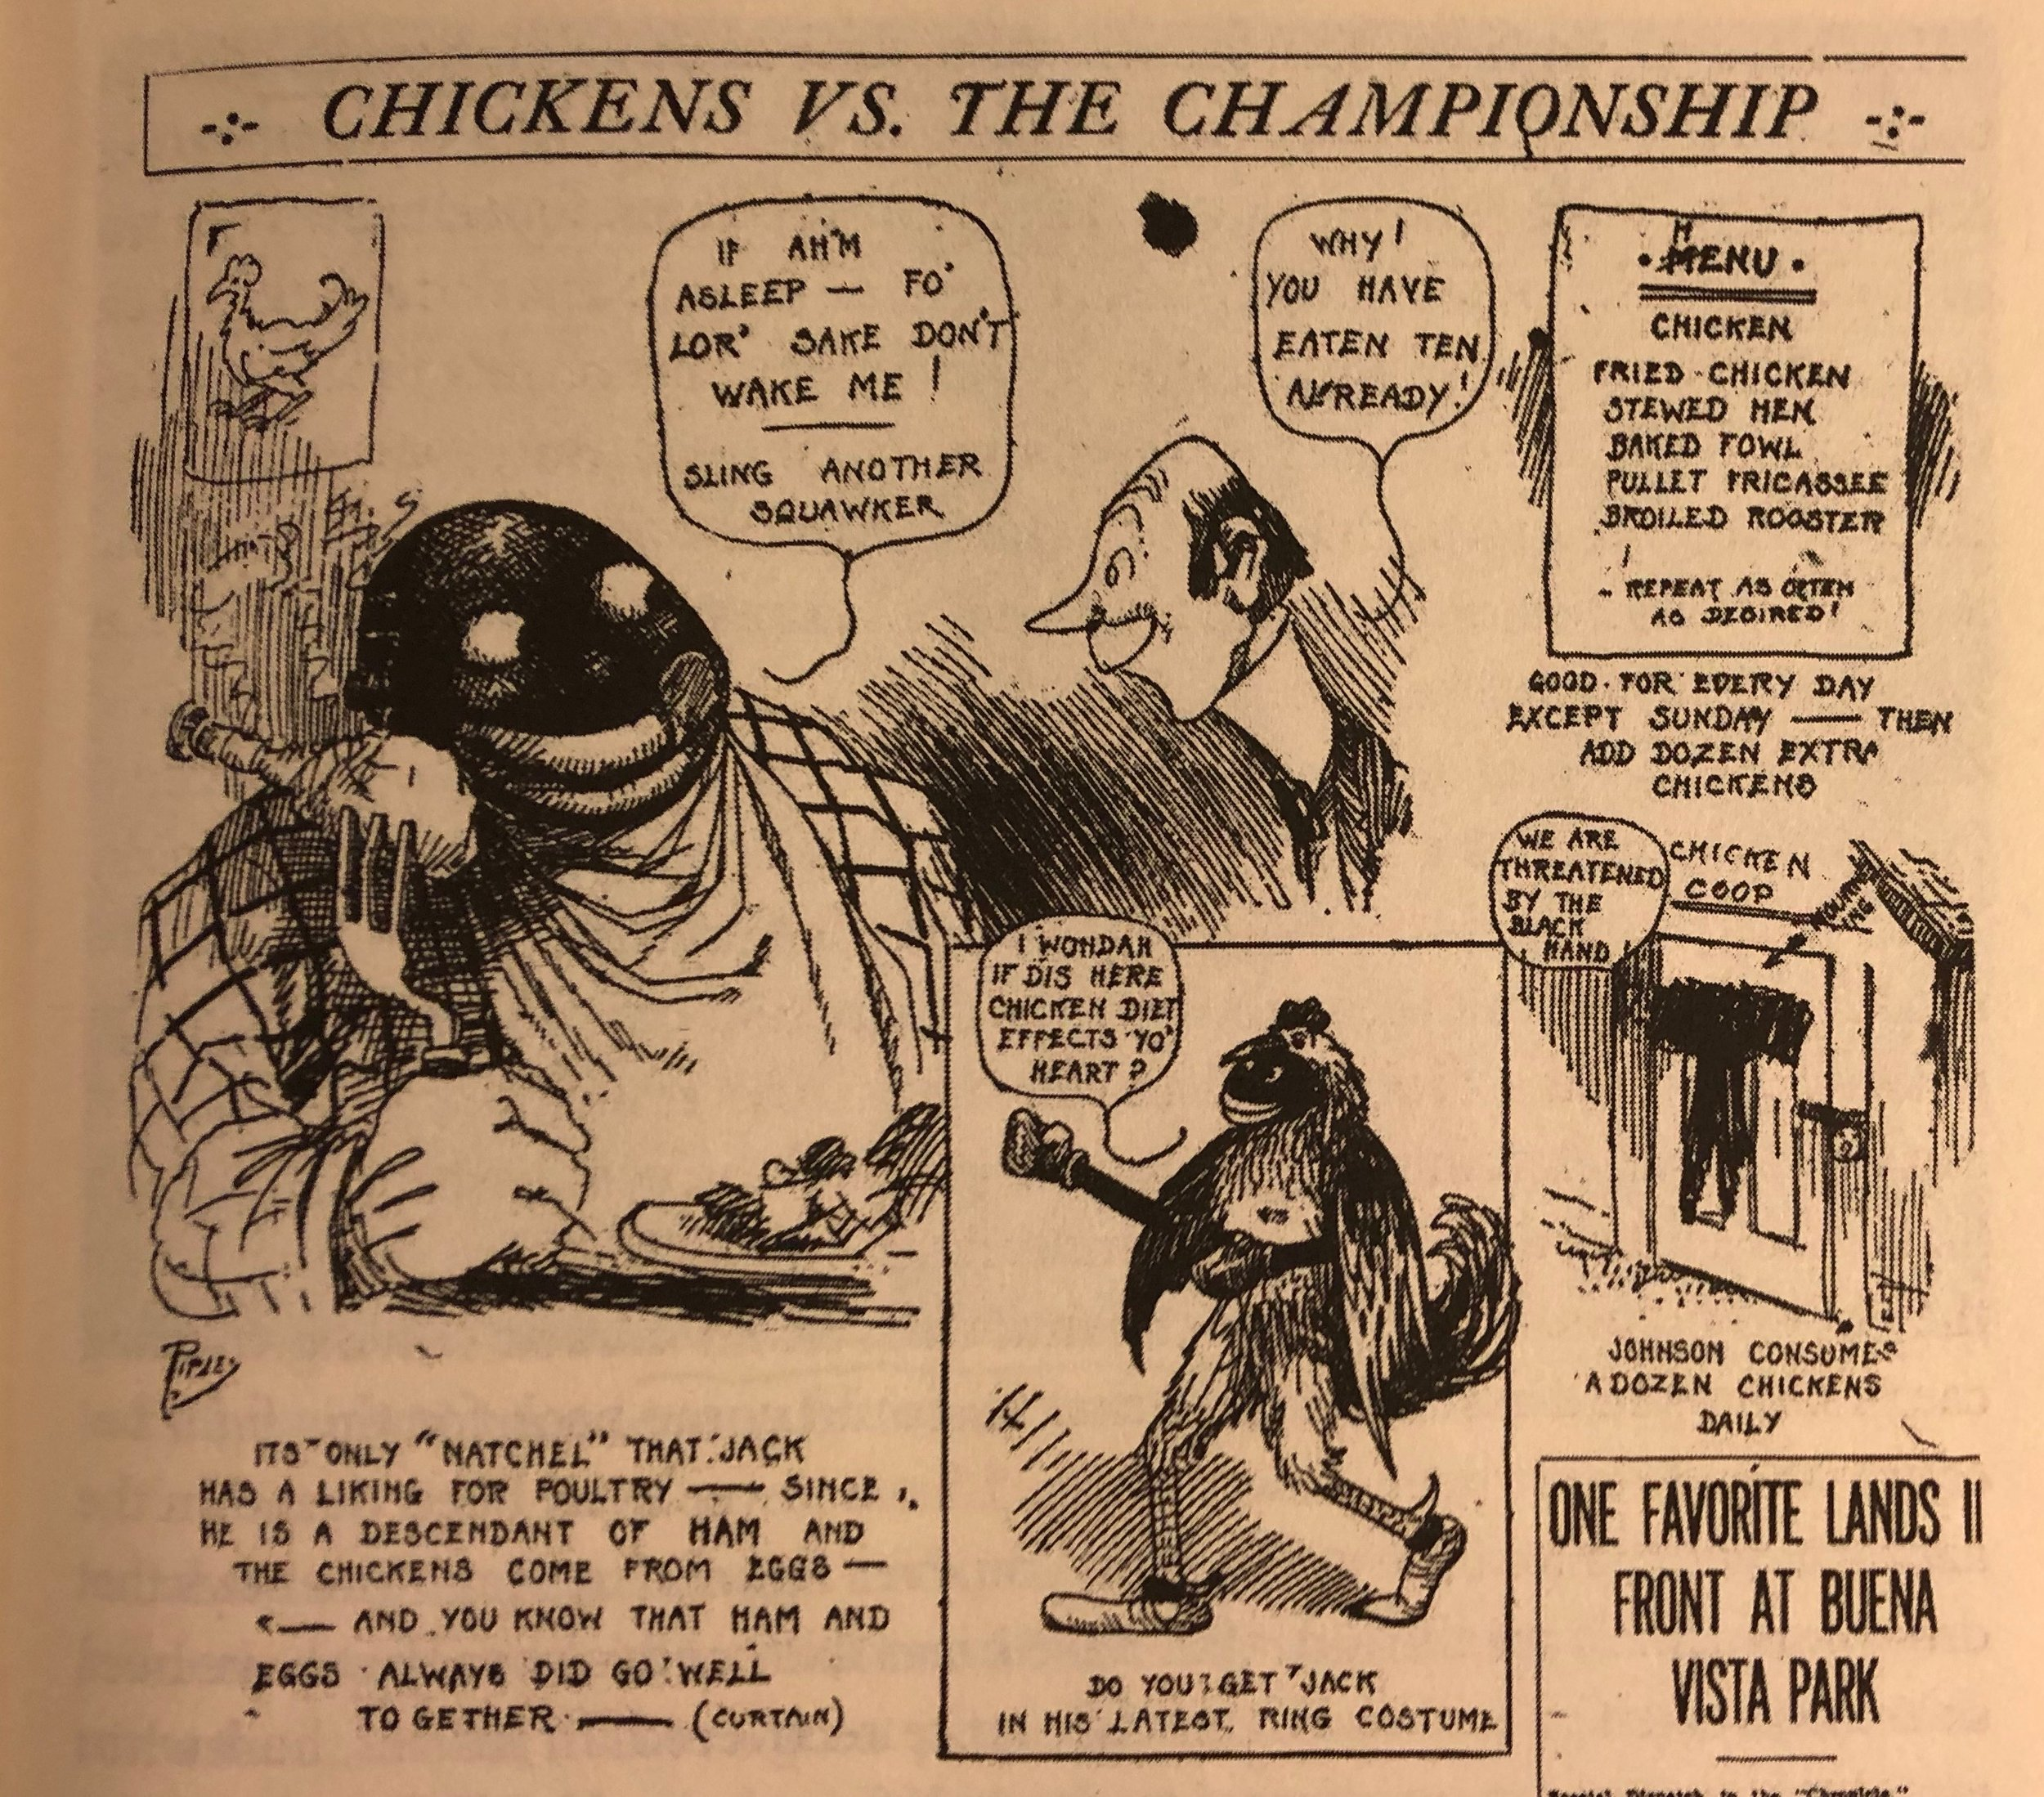 Jack Johnson portrayed as a chicken-loving Sambo in a 1910 issue of The San Francisco Chronicle. -